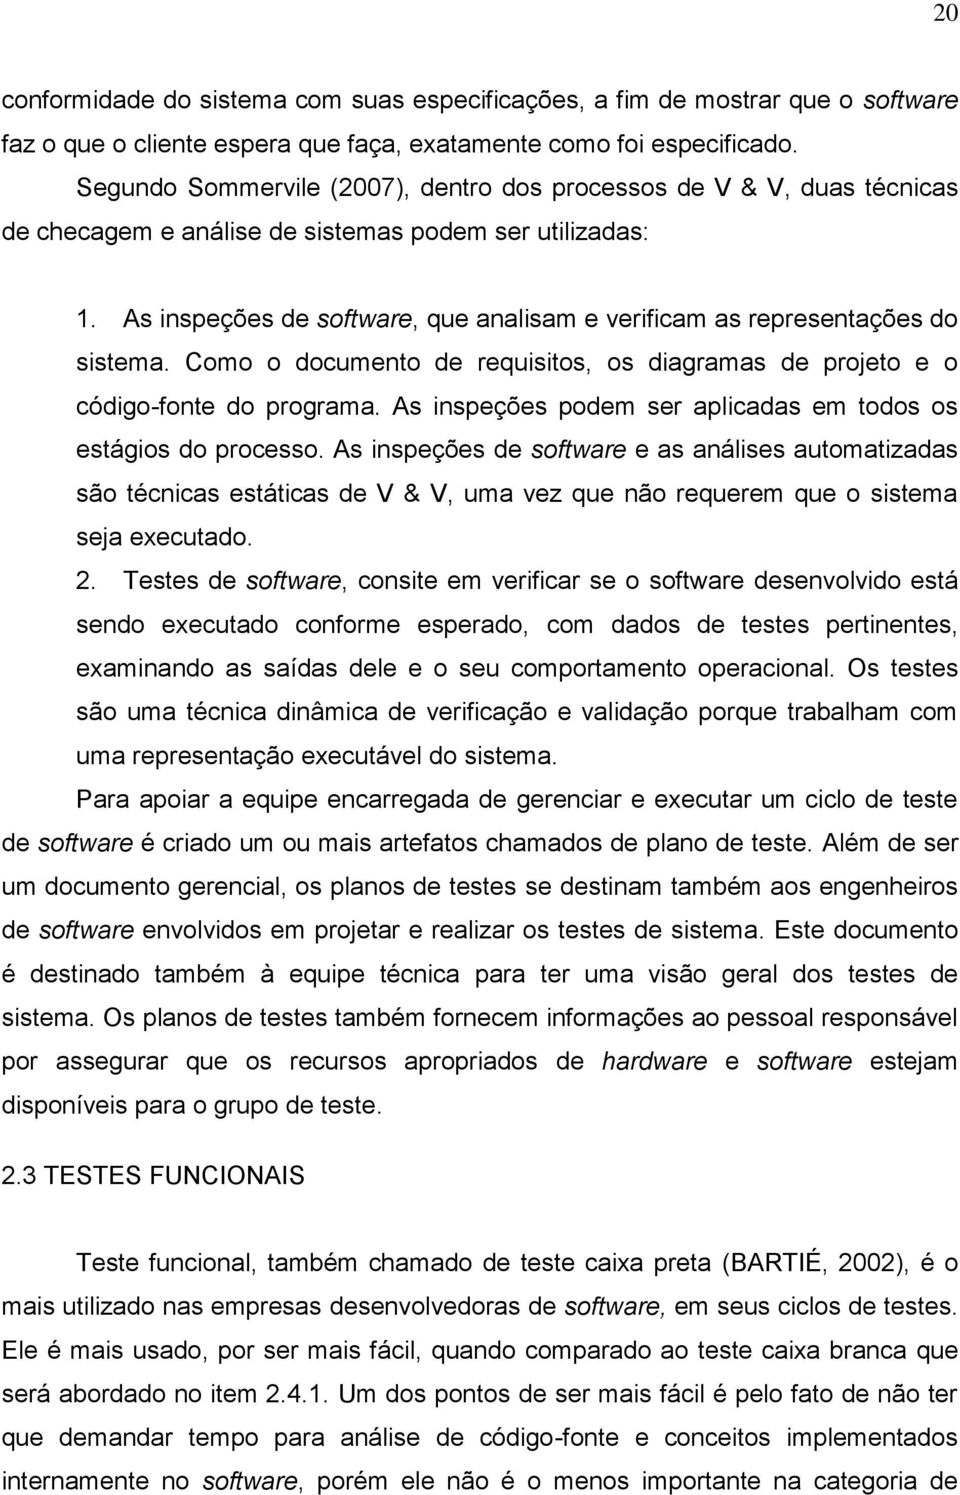 As inspeções de software, que analisam e verificam as representações do sistema. Como o documento de requisitos, os diagramas de projeto e o código-fonte do programa.